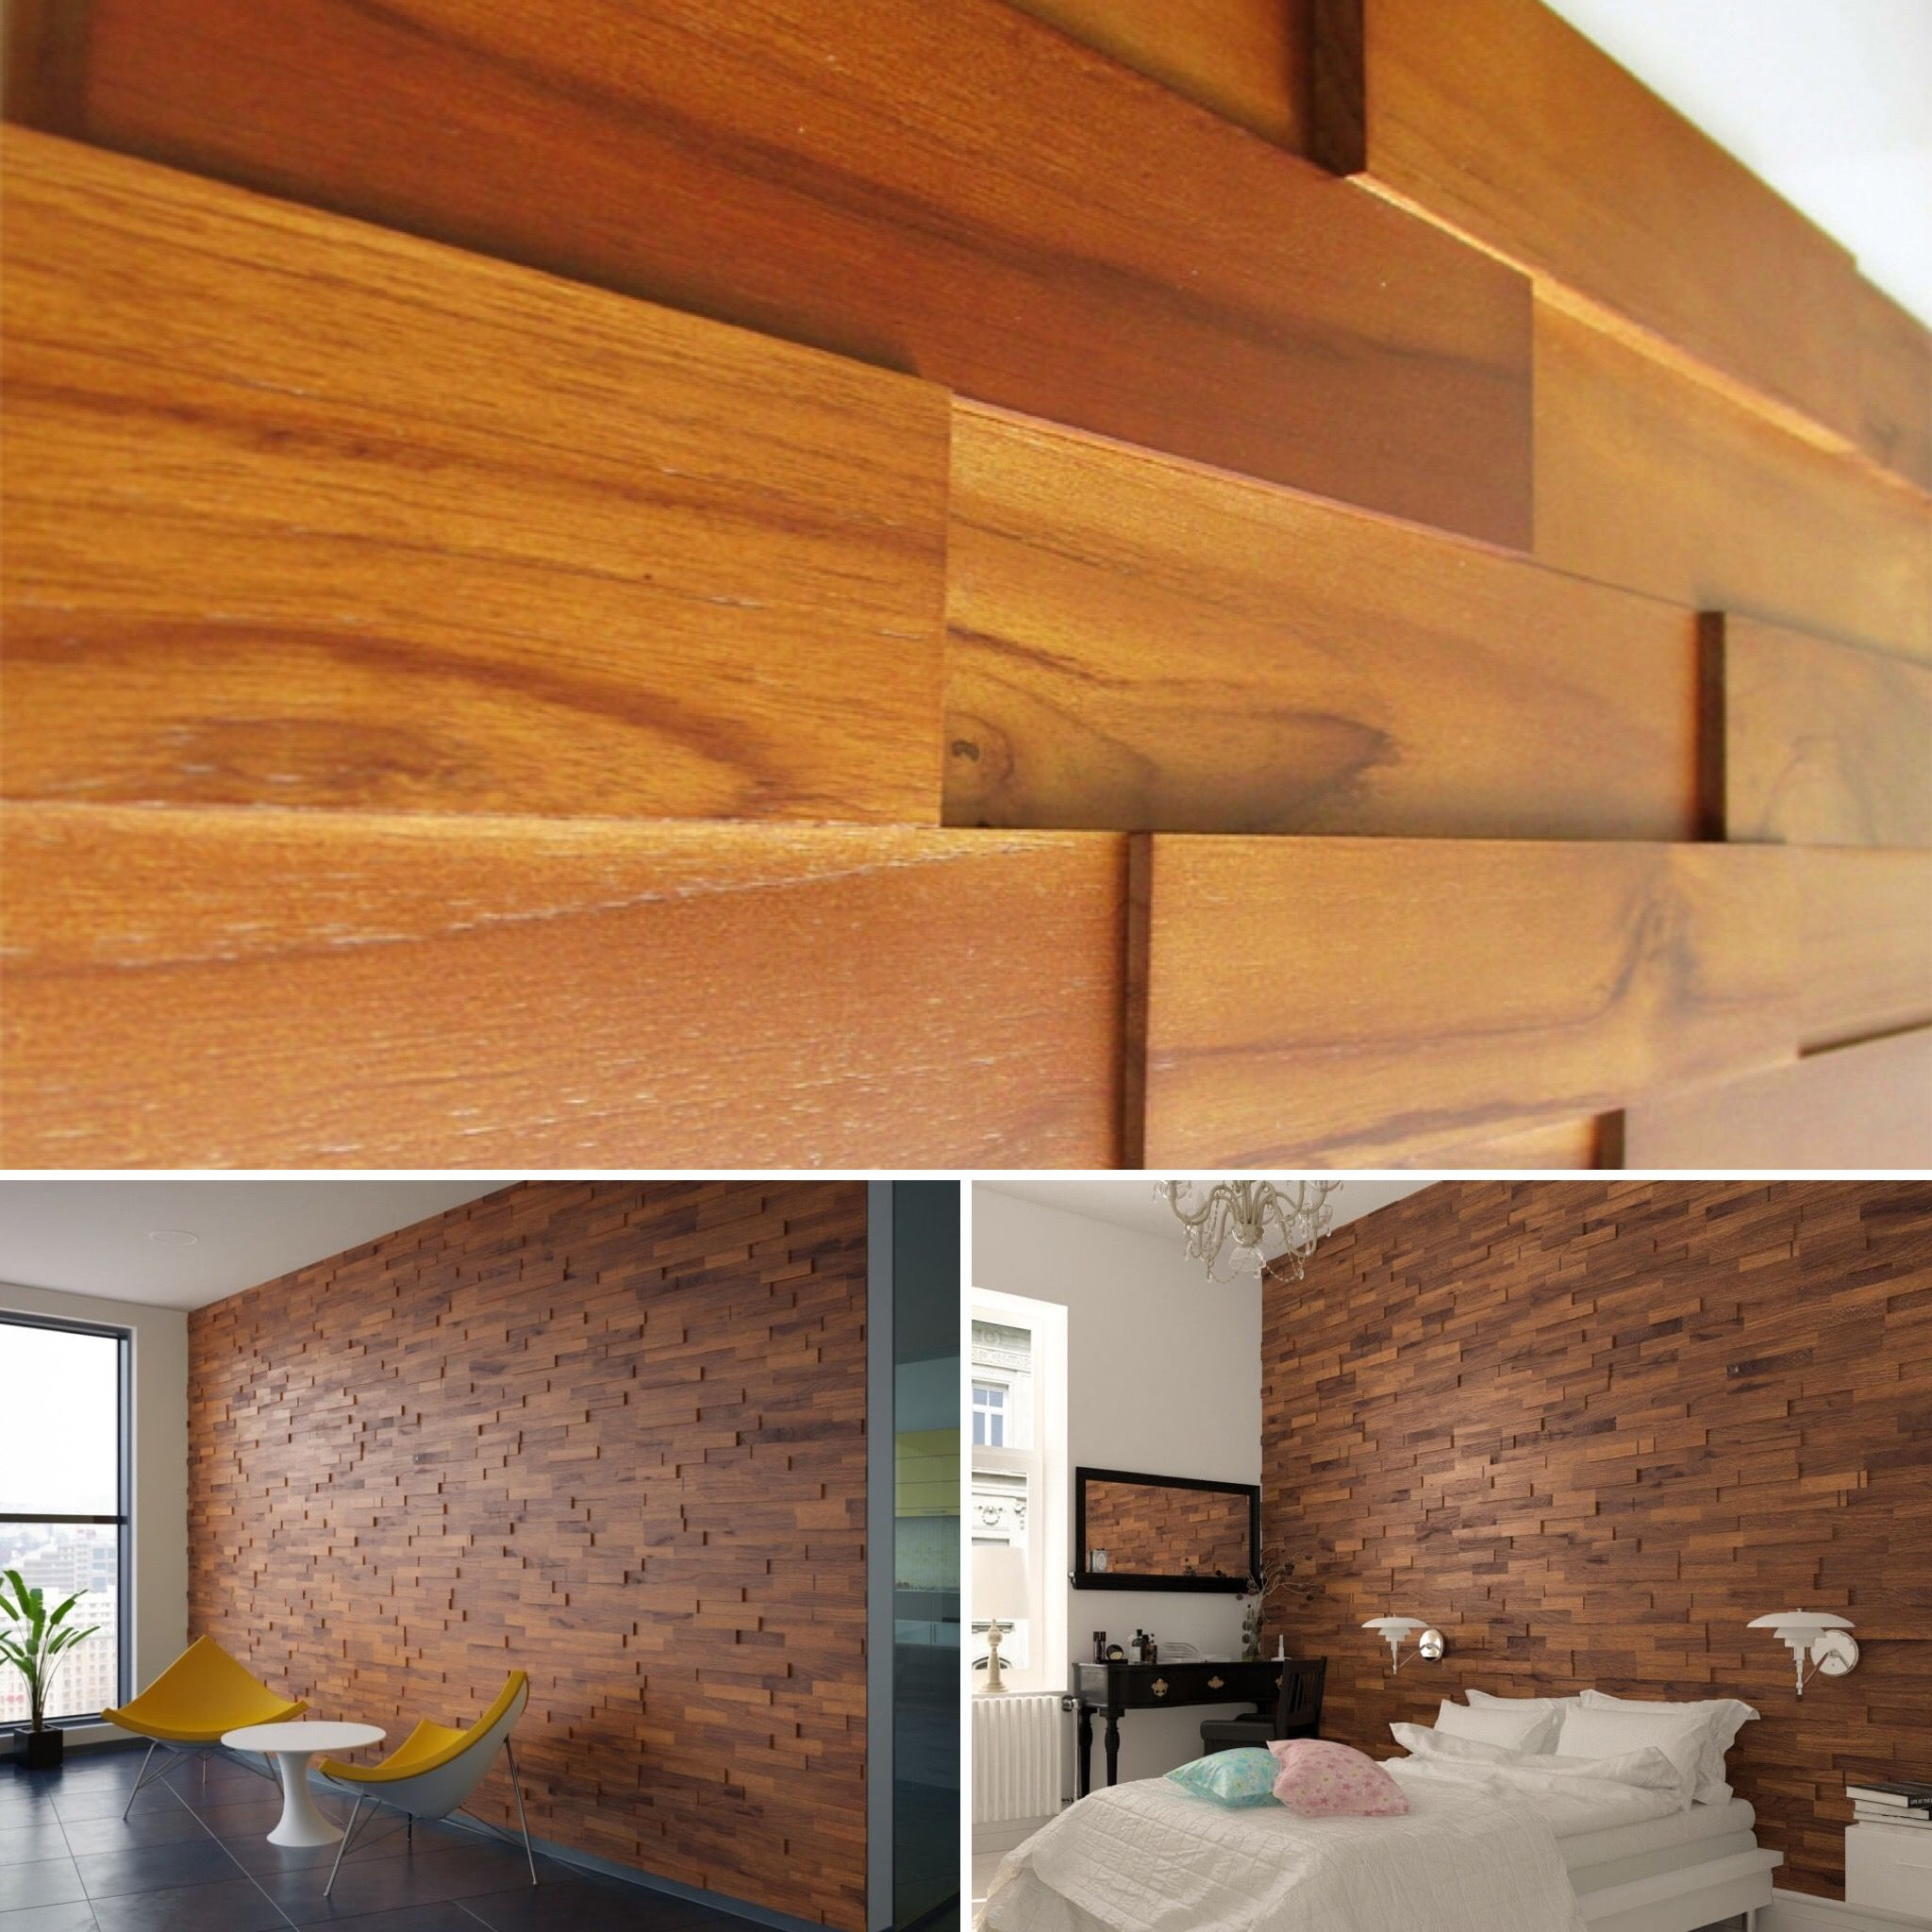 3d Wall Panels Decorative Wall Paneling Wood Wall Panels